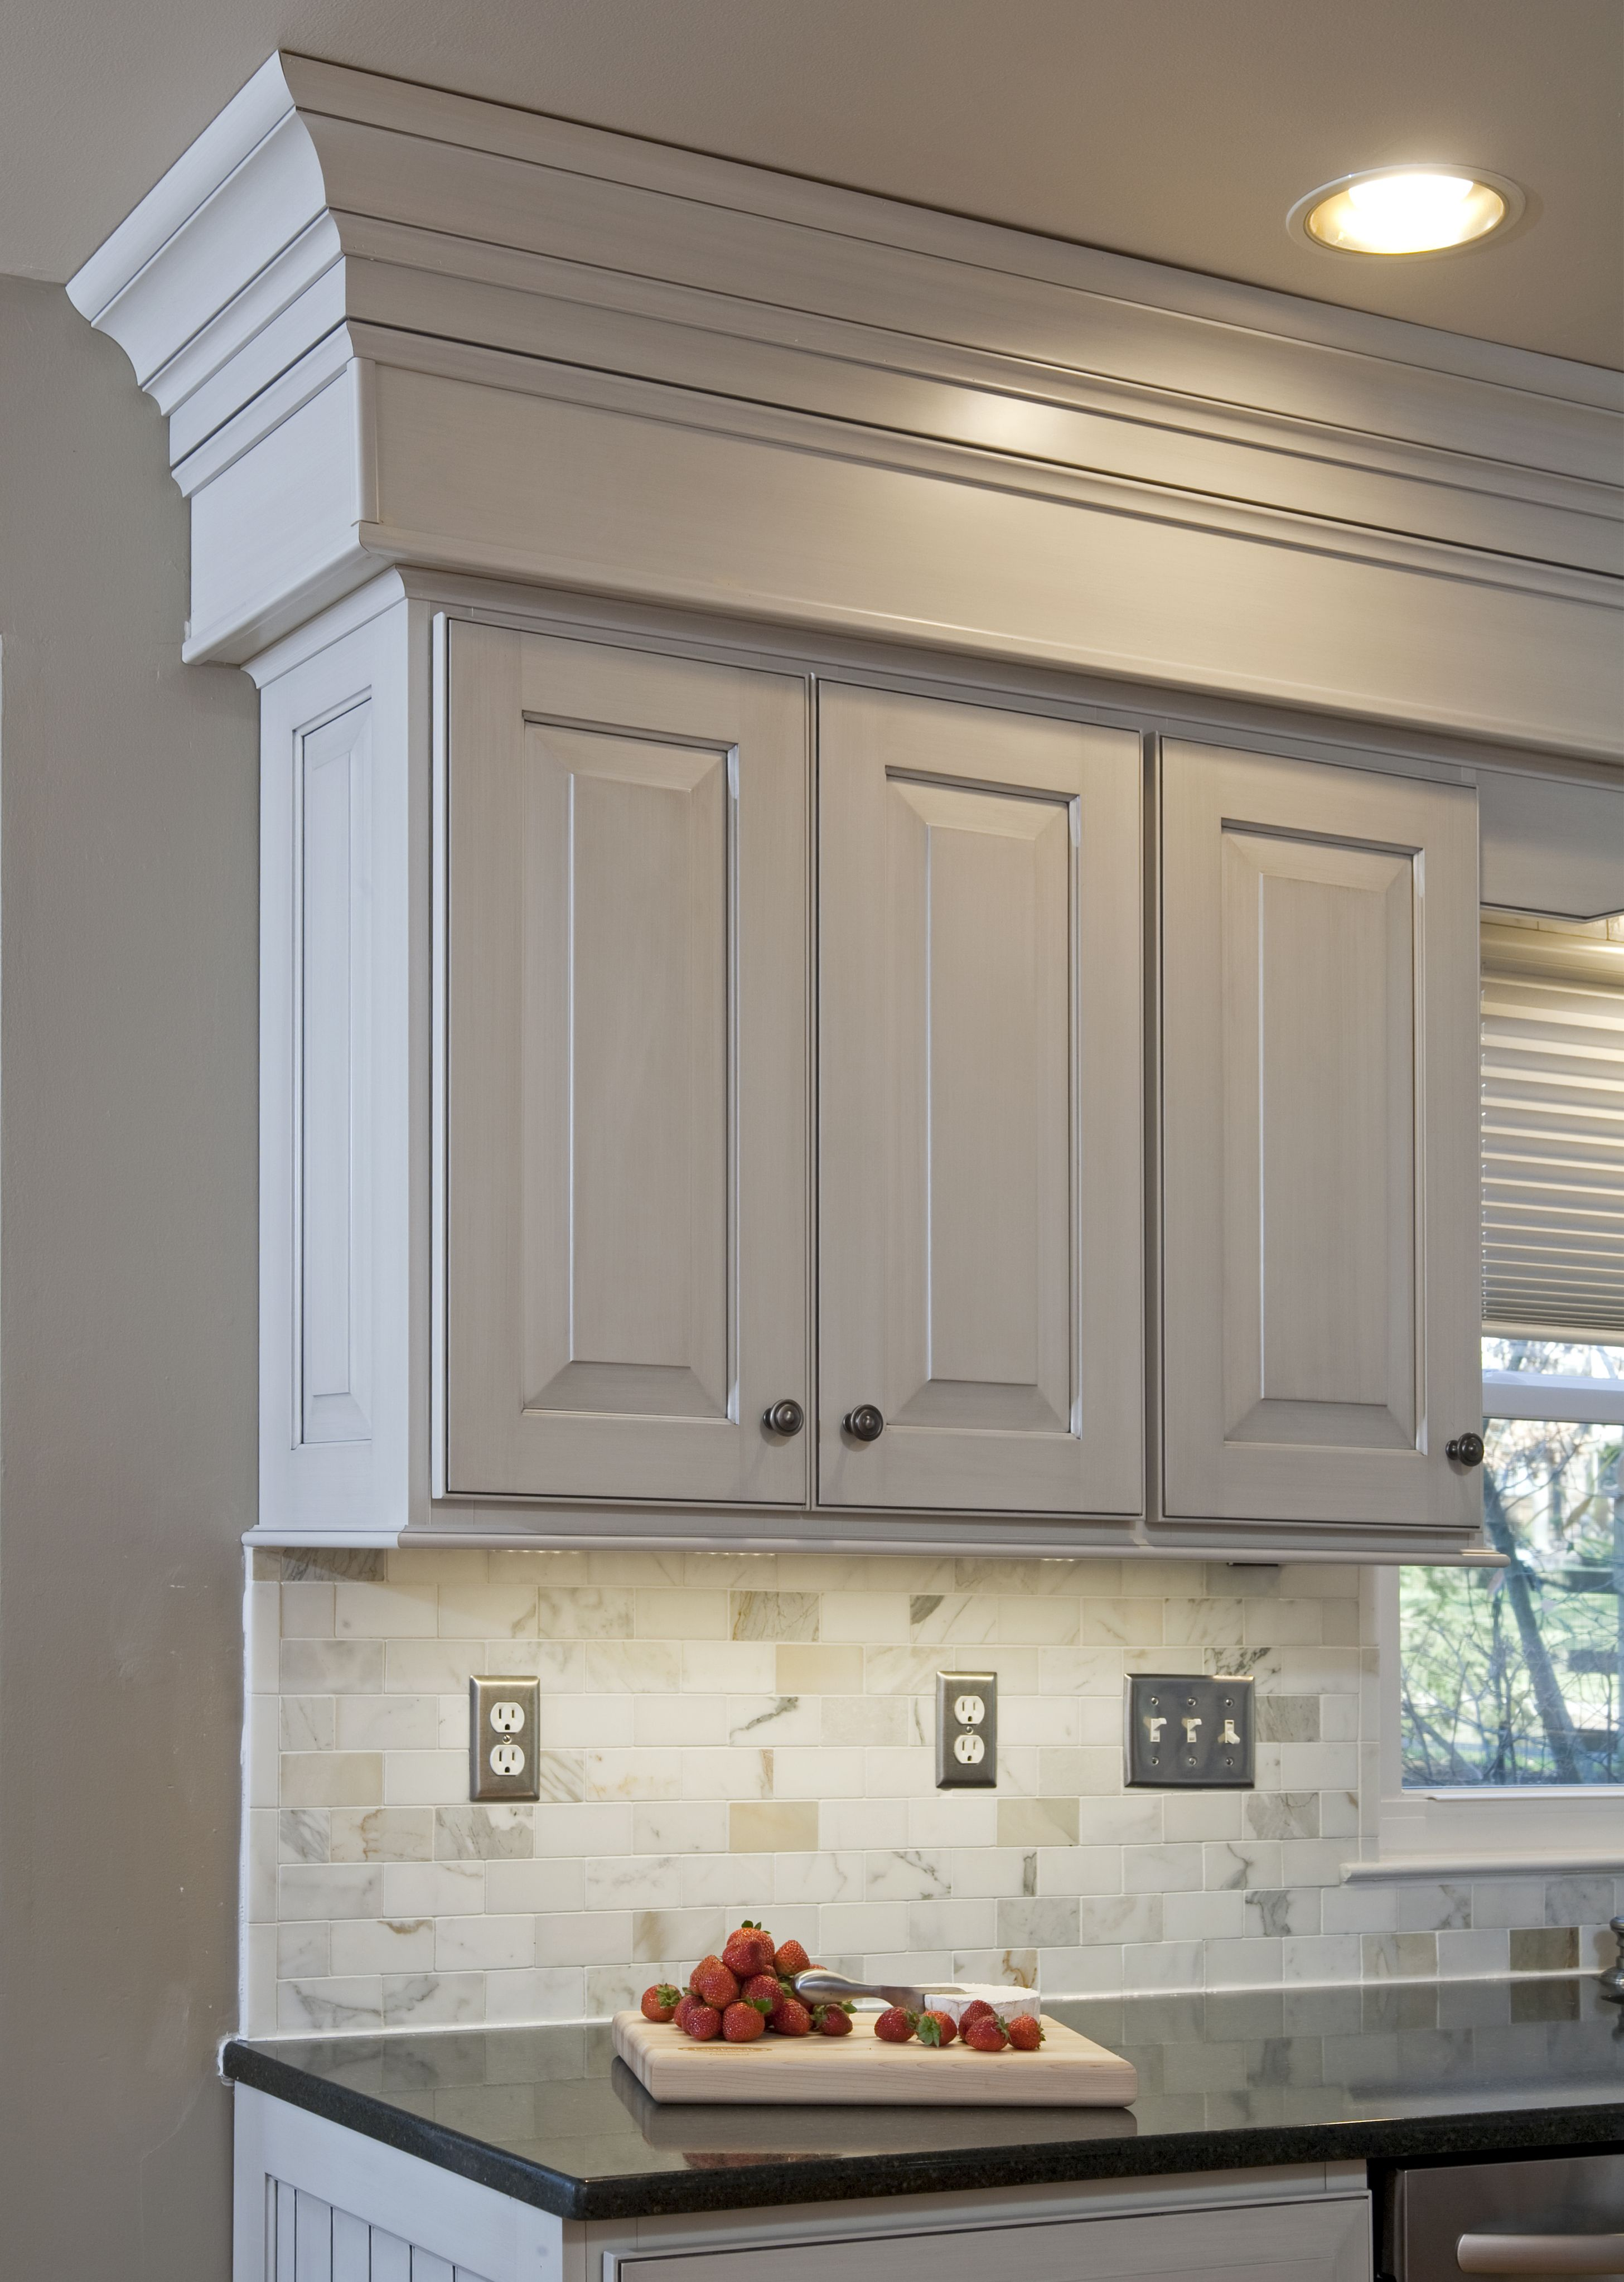 The Veneto Finish Pulls Out The Warm Gray Tones In The New 2 X 3 Marble Backsplash The Cab Wainscoting Bathroom Dining Room Wainscoting Wainscoting Kitchen